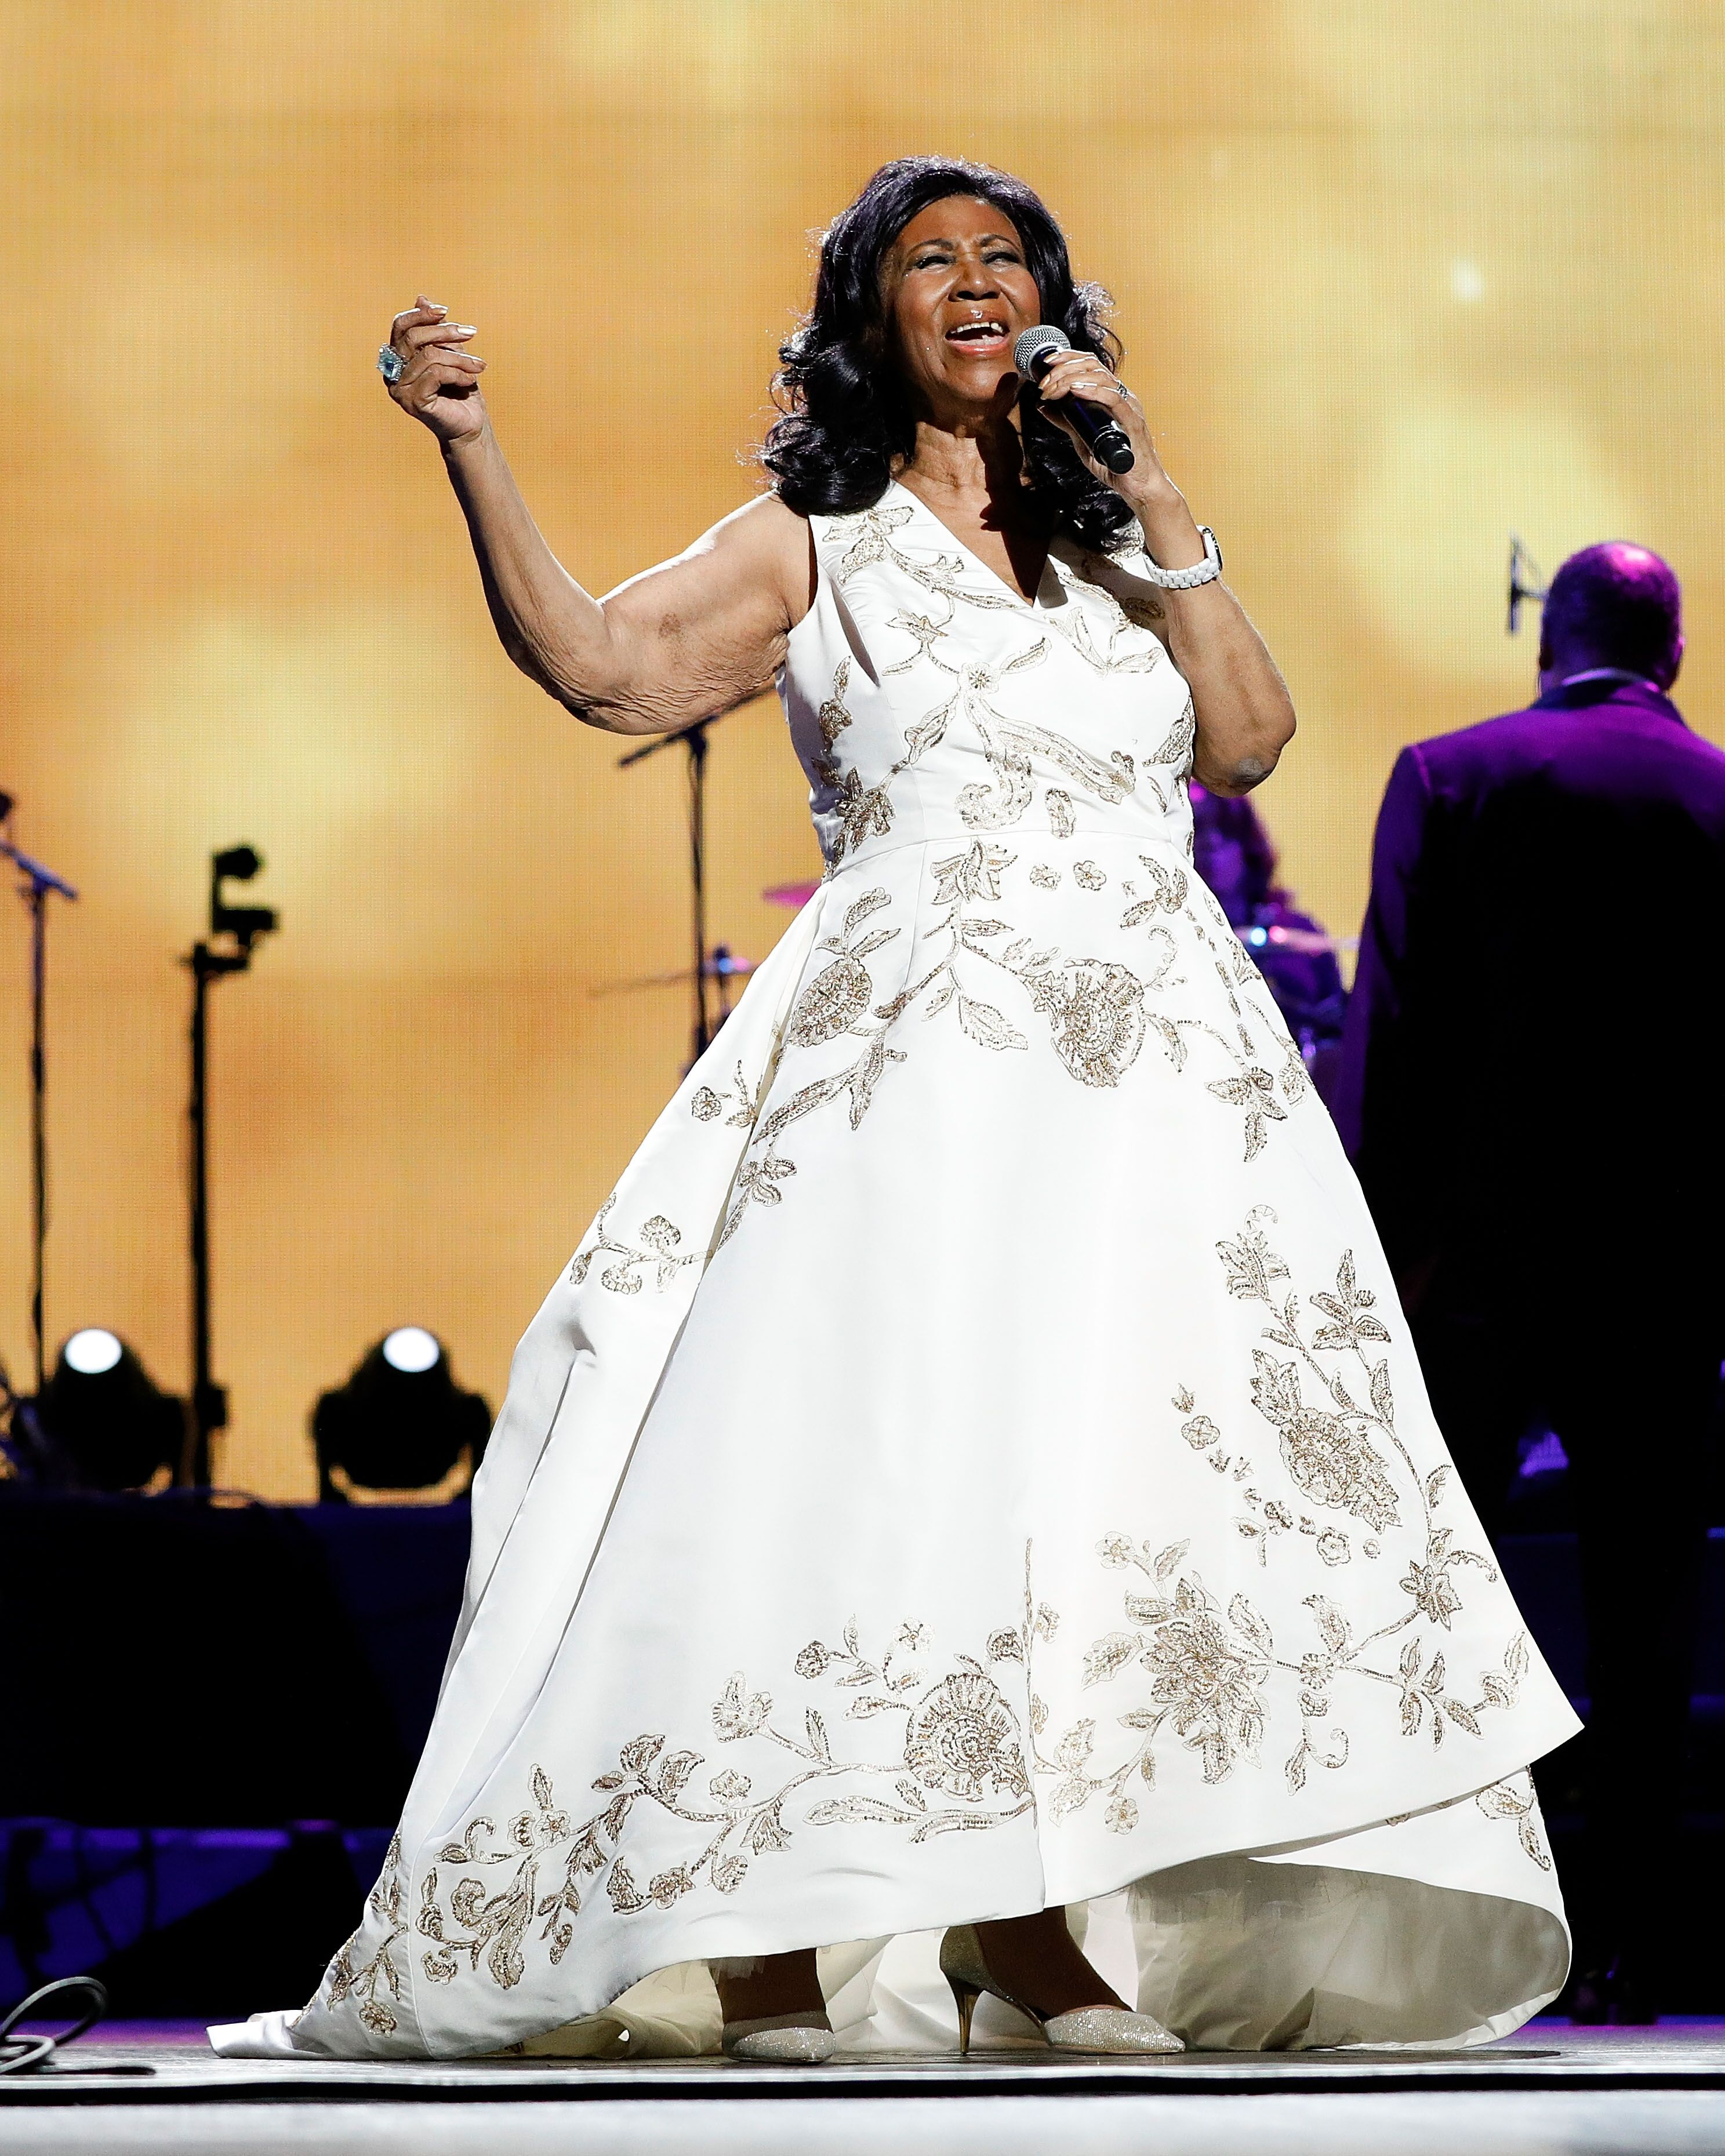 The Queen of Soul, Aretha Franklin, performing on-stage | Source: Getty Images/GlobalImagesUkraine